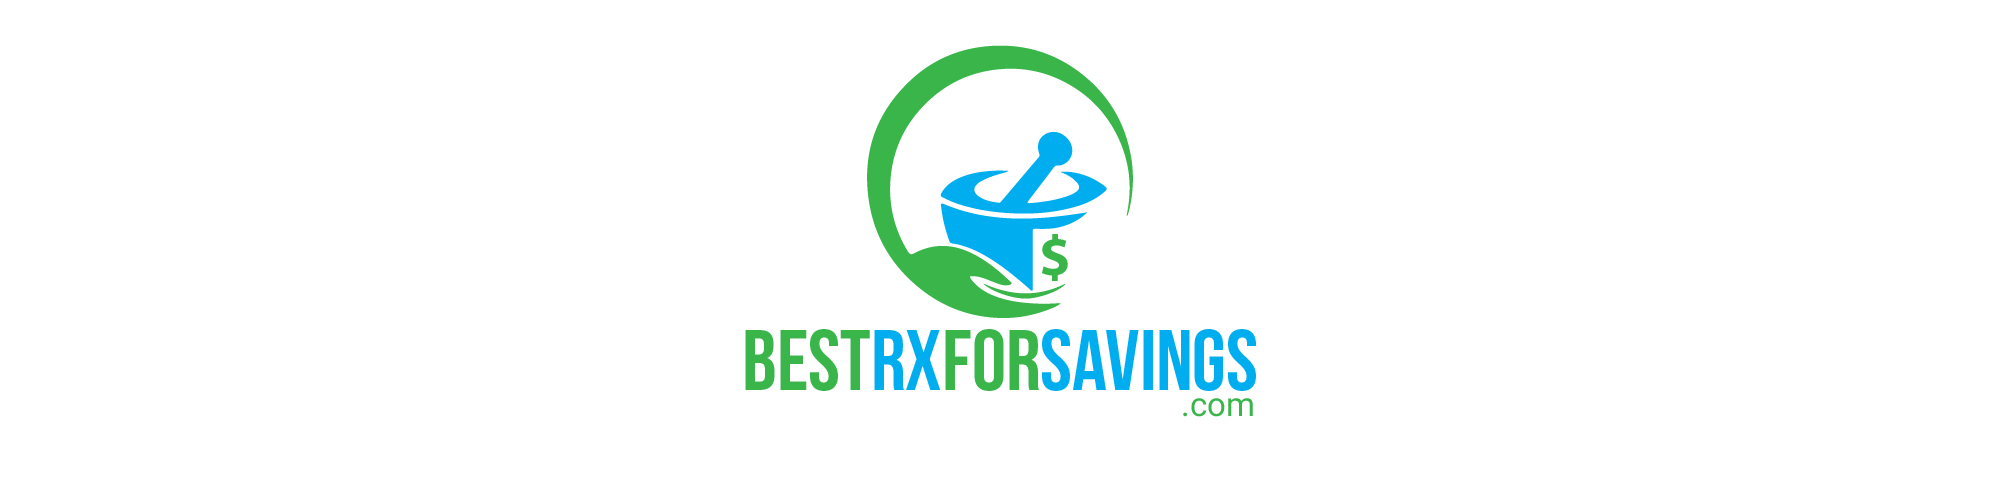 Best Rx For Savings